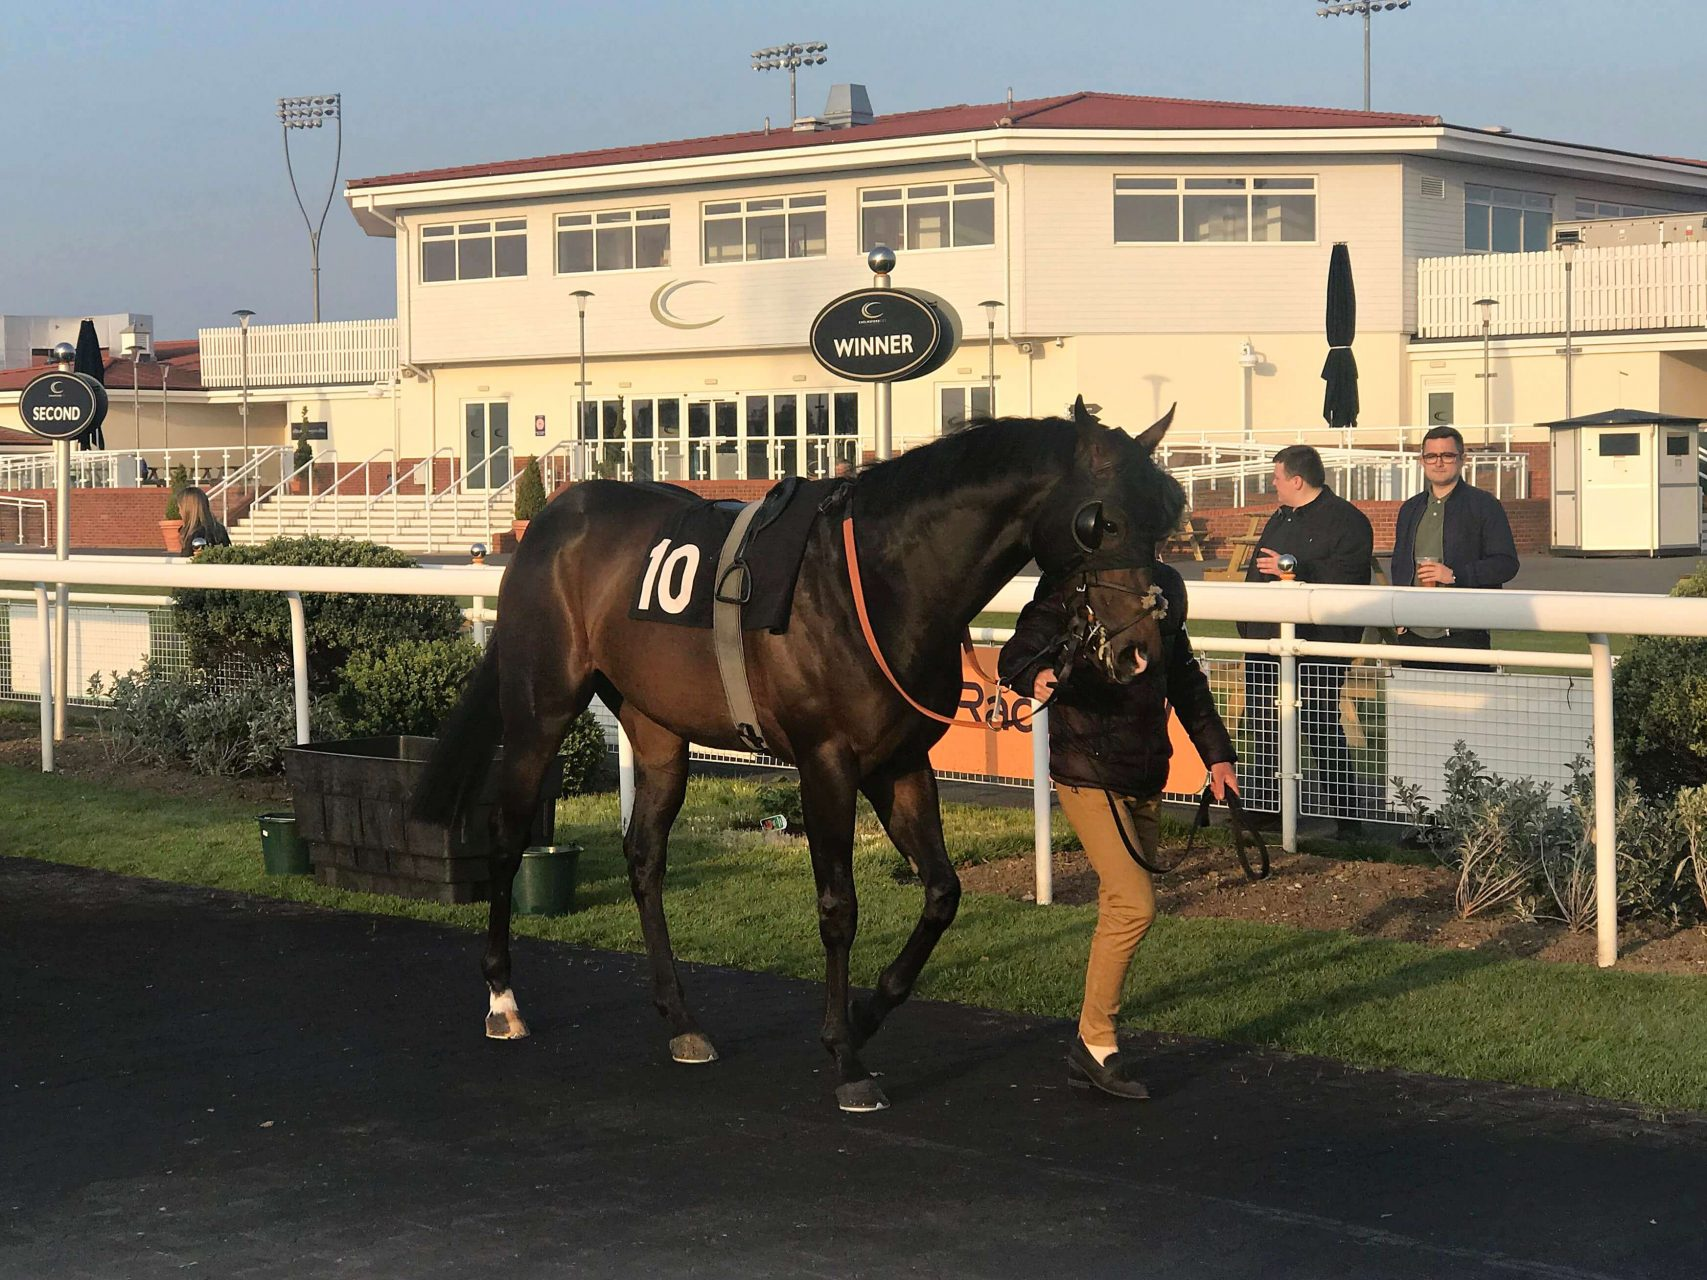 Jailbreak in parade ring at Chelmsford 30 April 2019